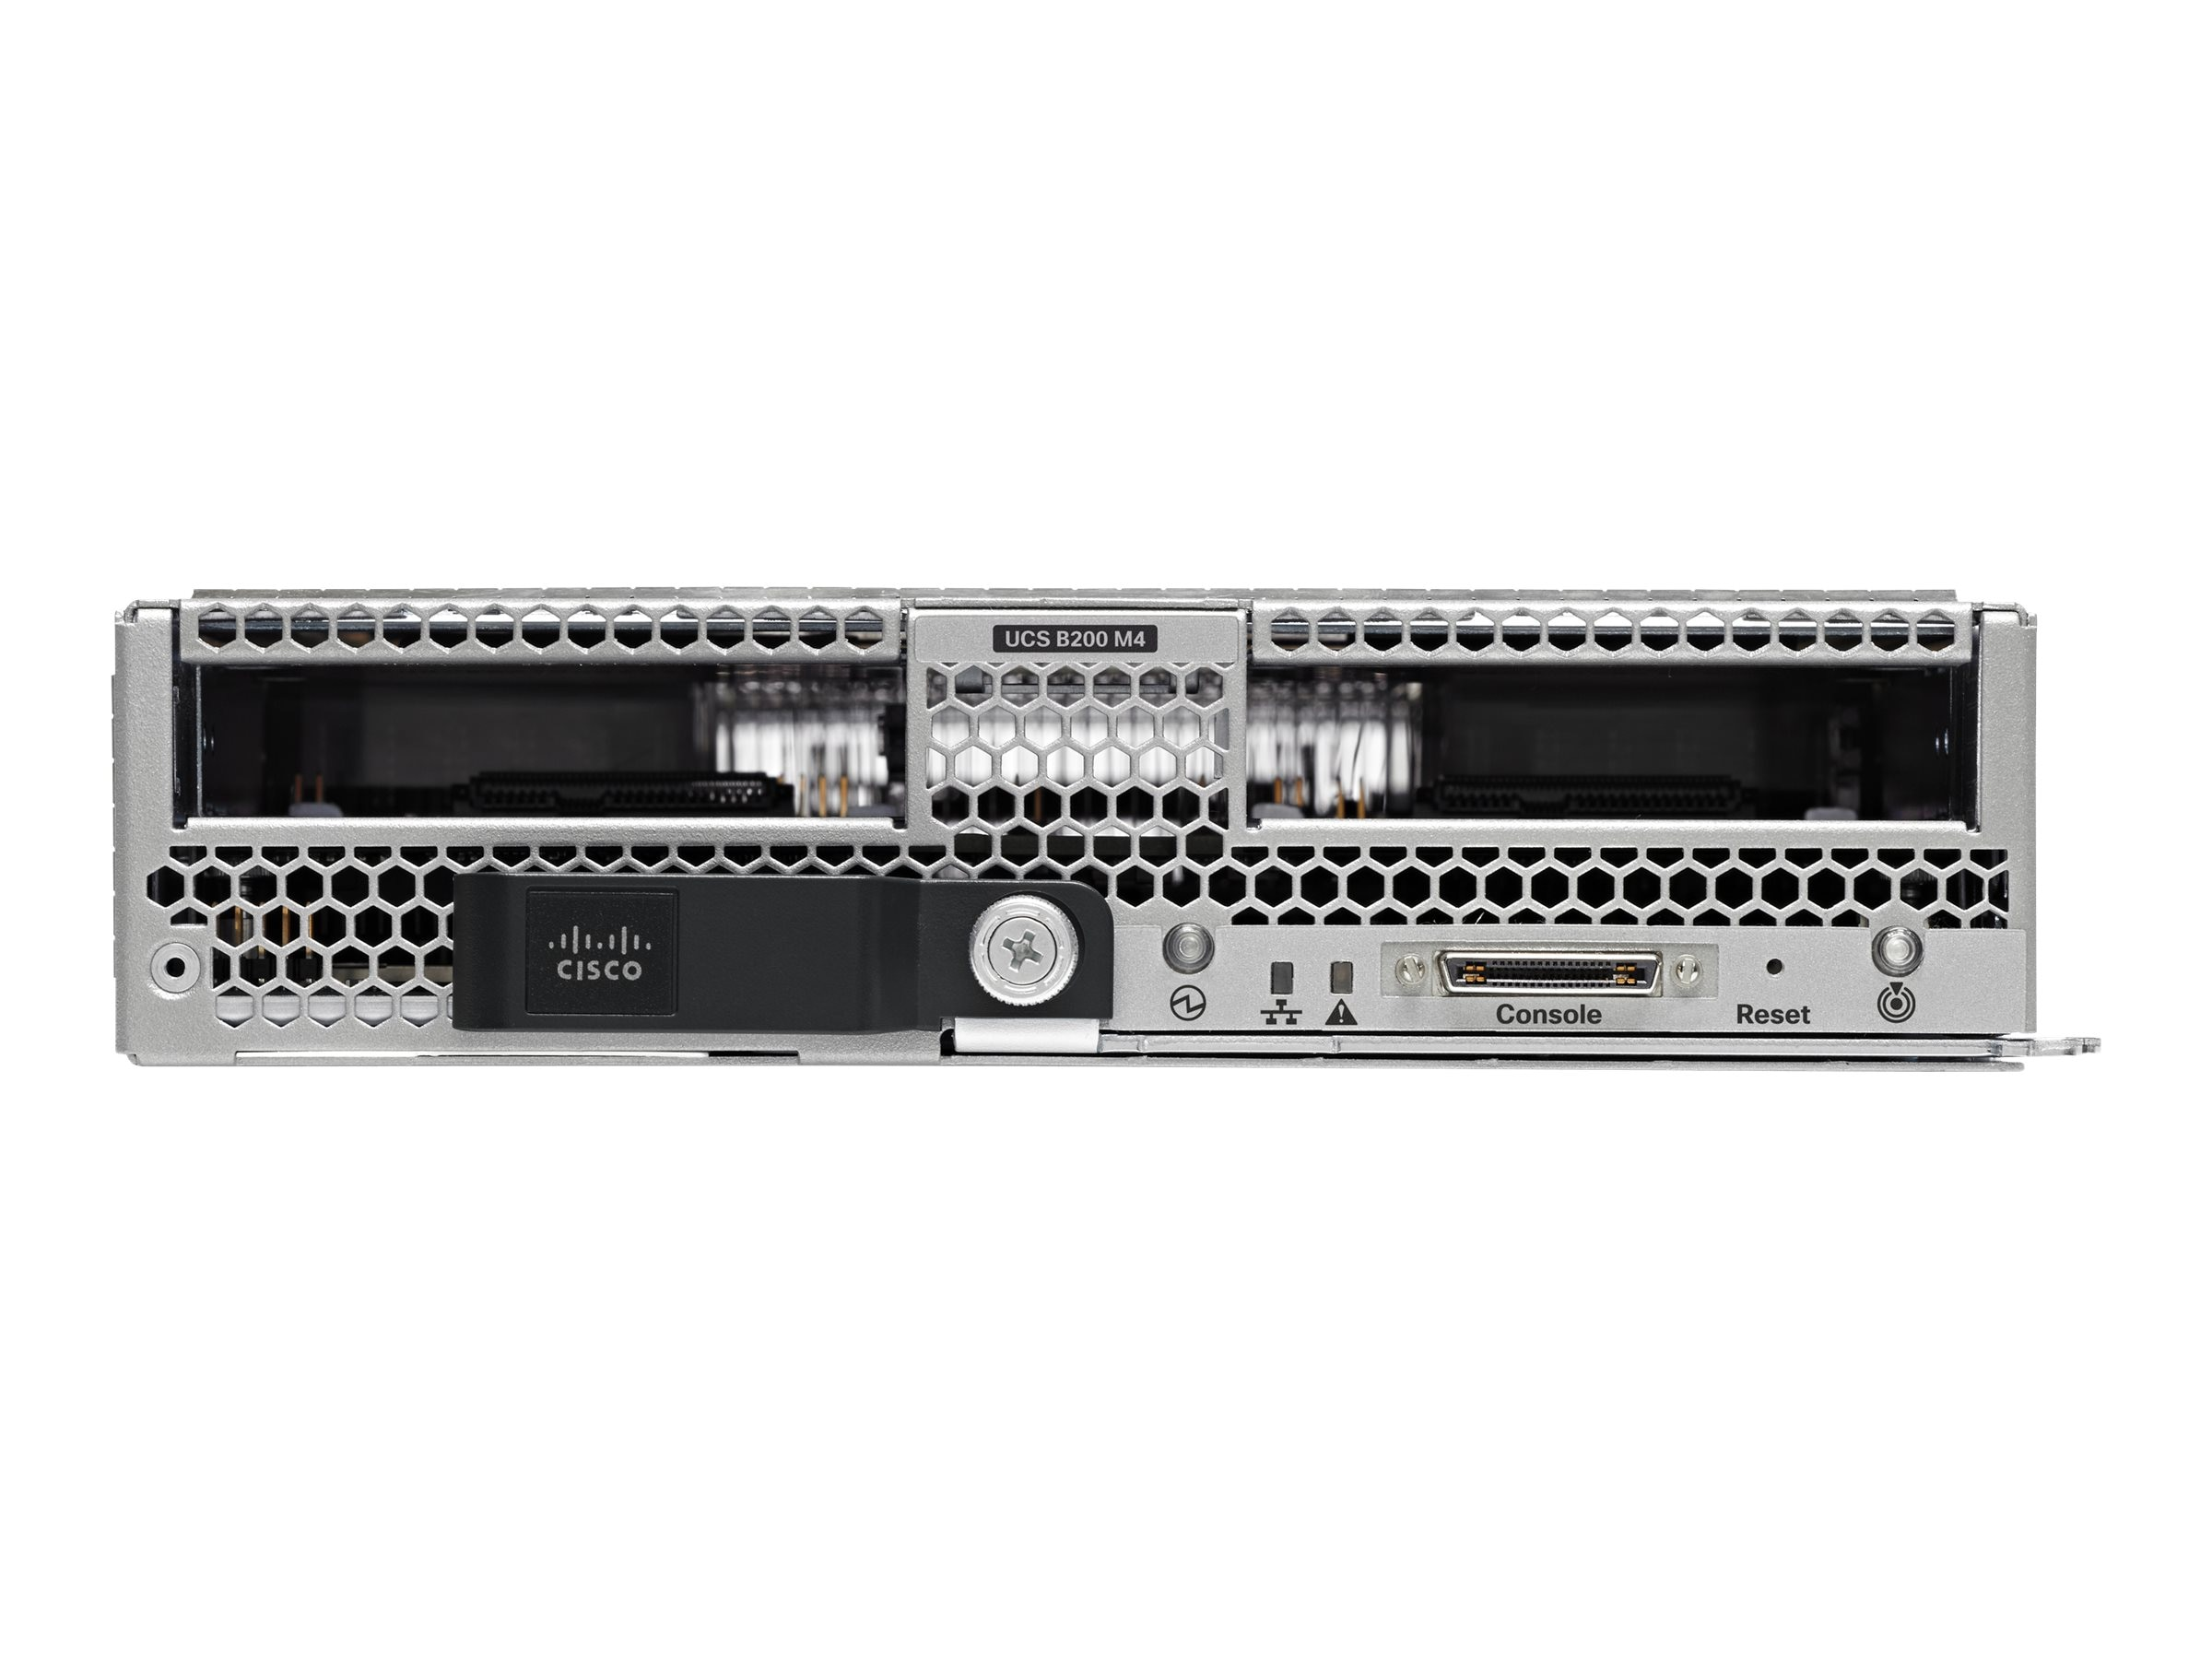 Cisco UCS-EZ8-B200M4-VP Image 2